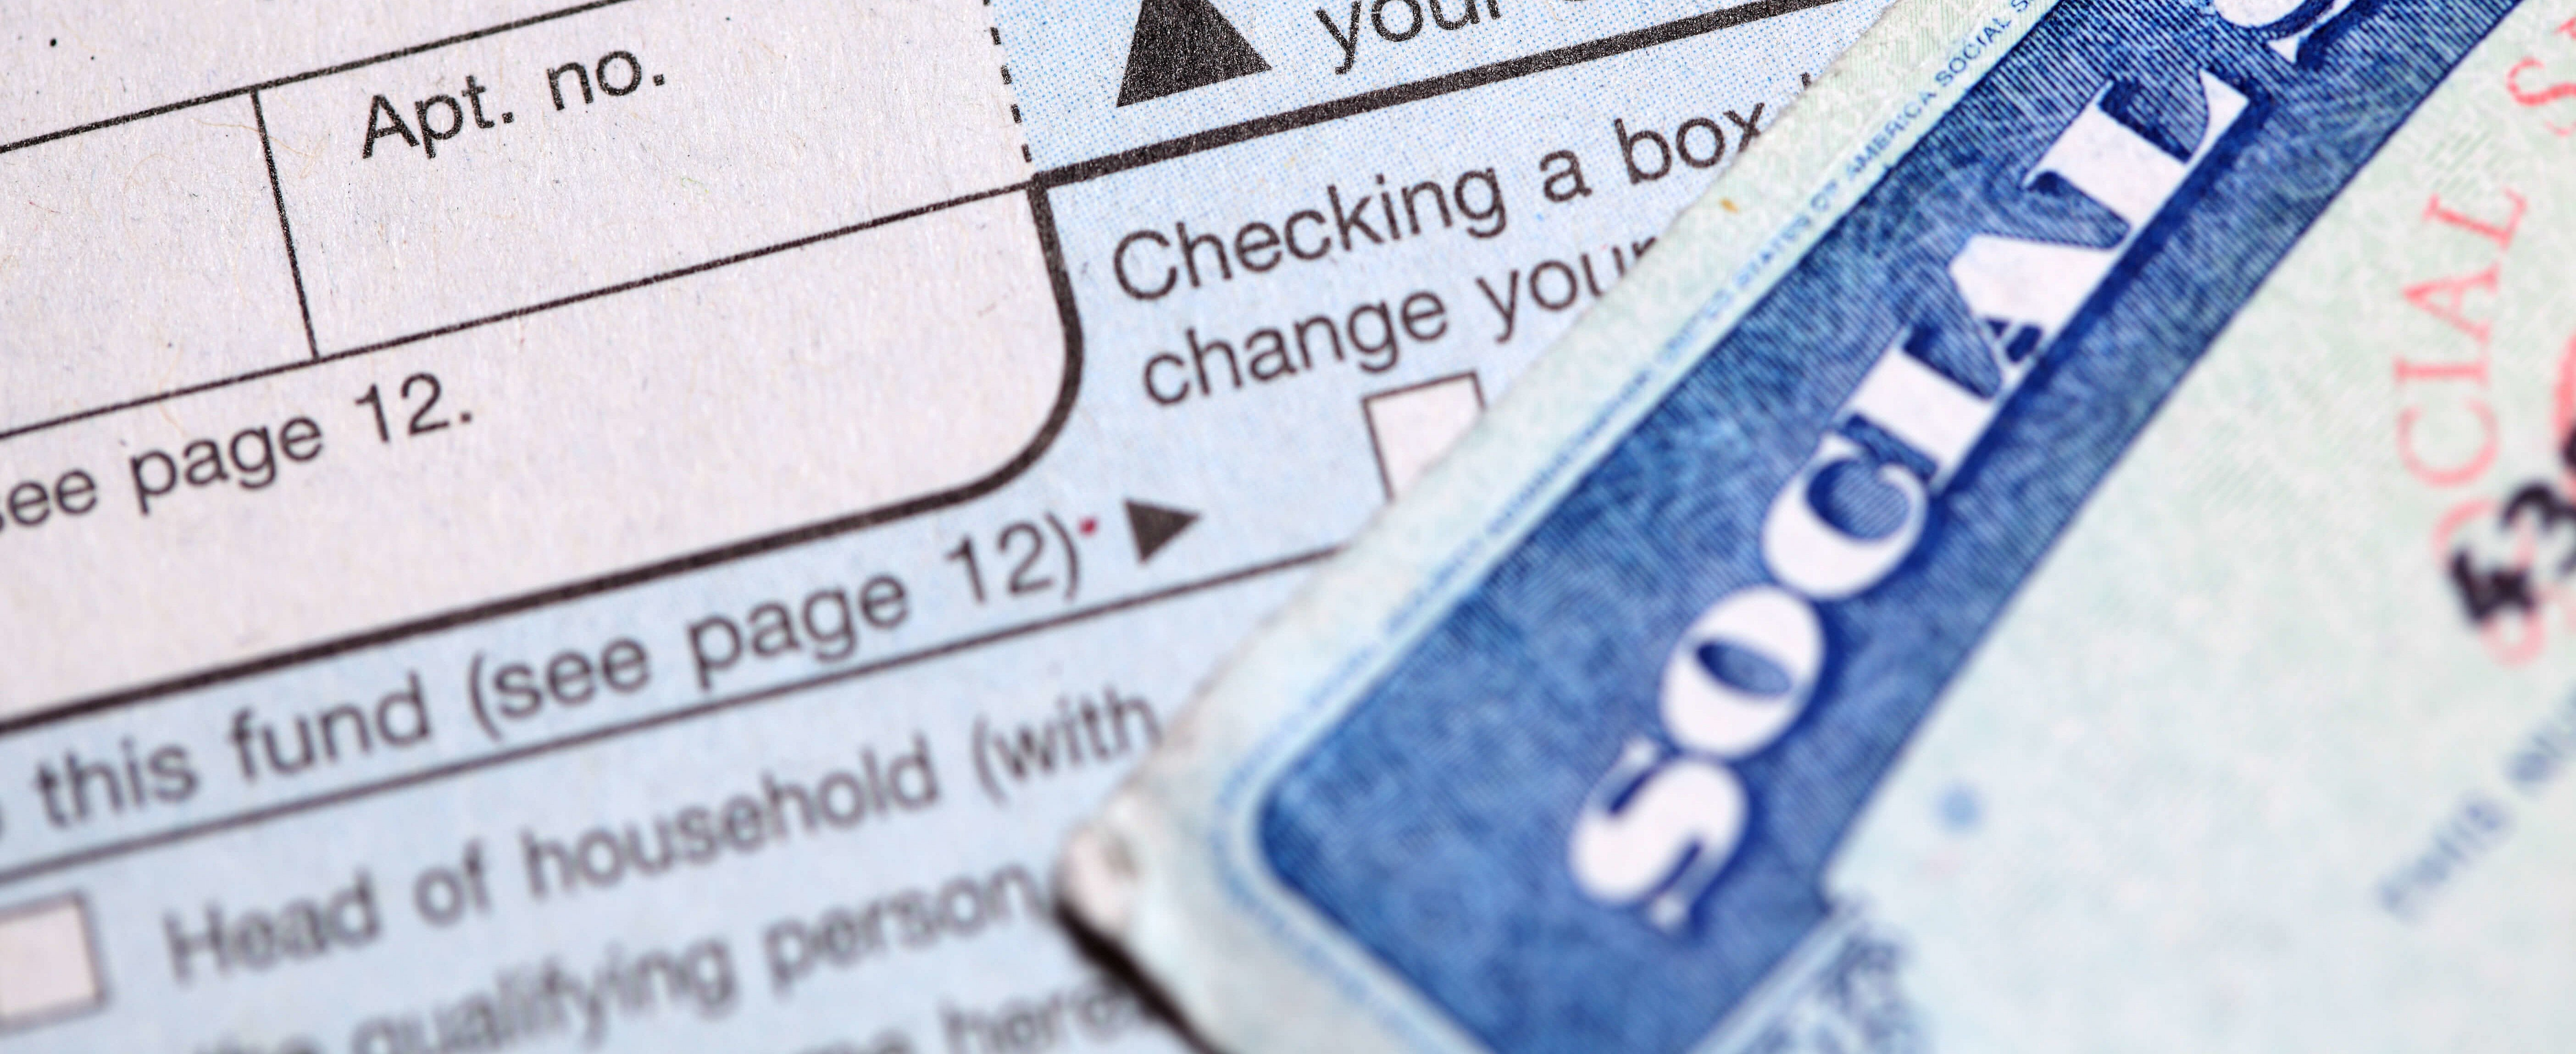 shotof social security card and tax form